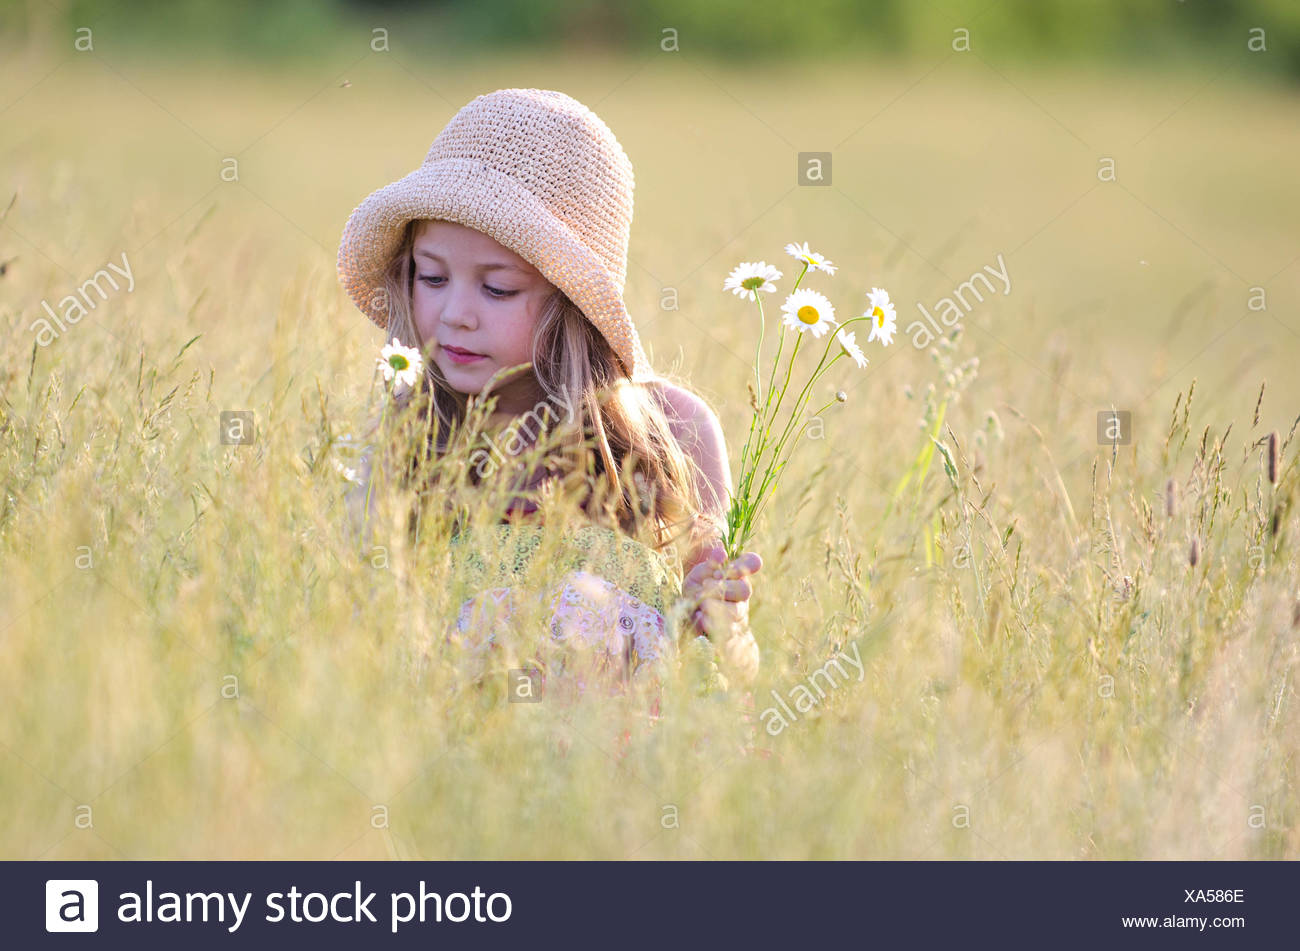 Girl picking wildflowers in meadow Stock Photo